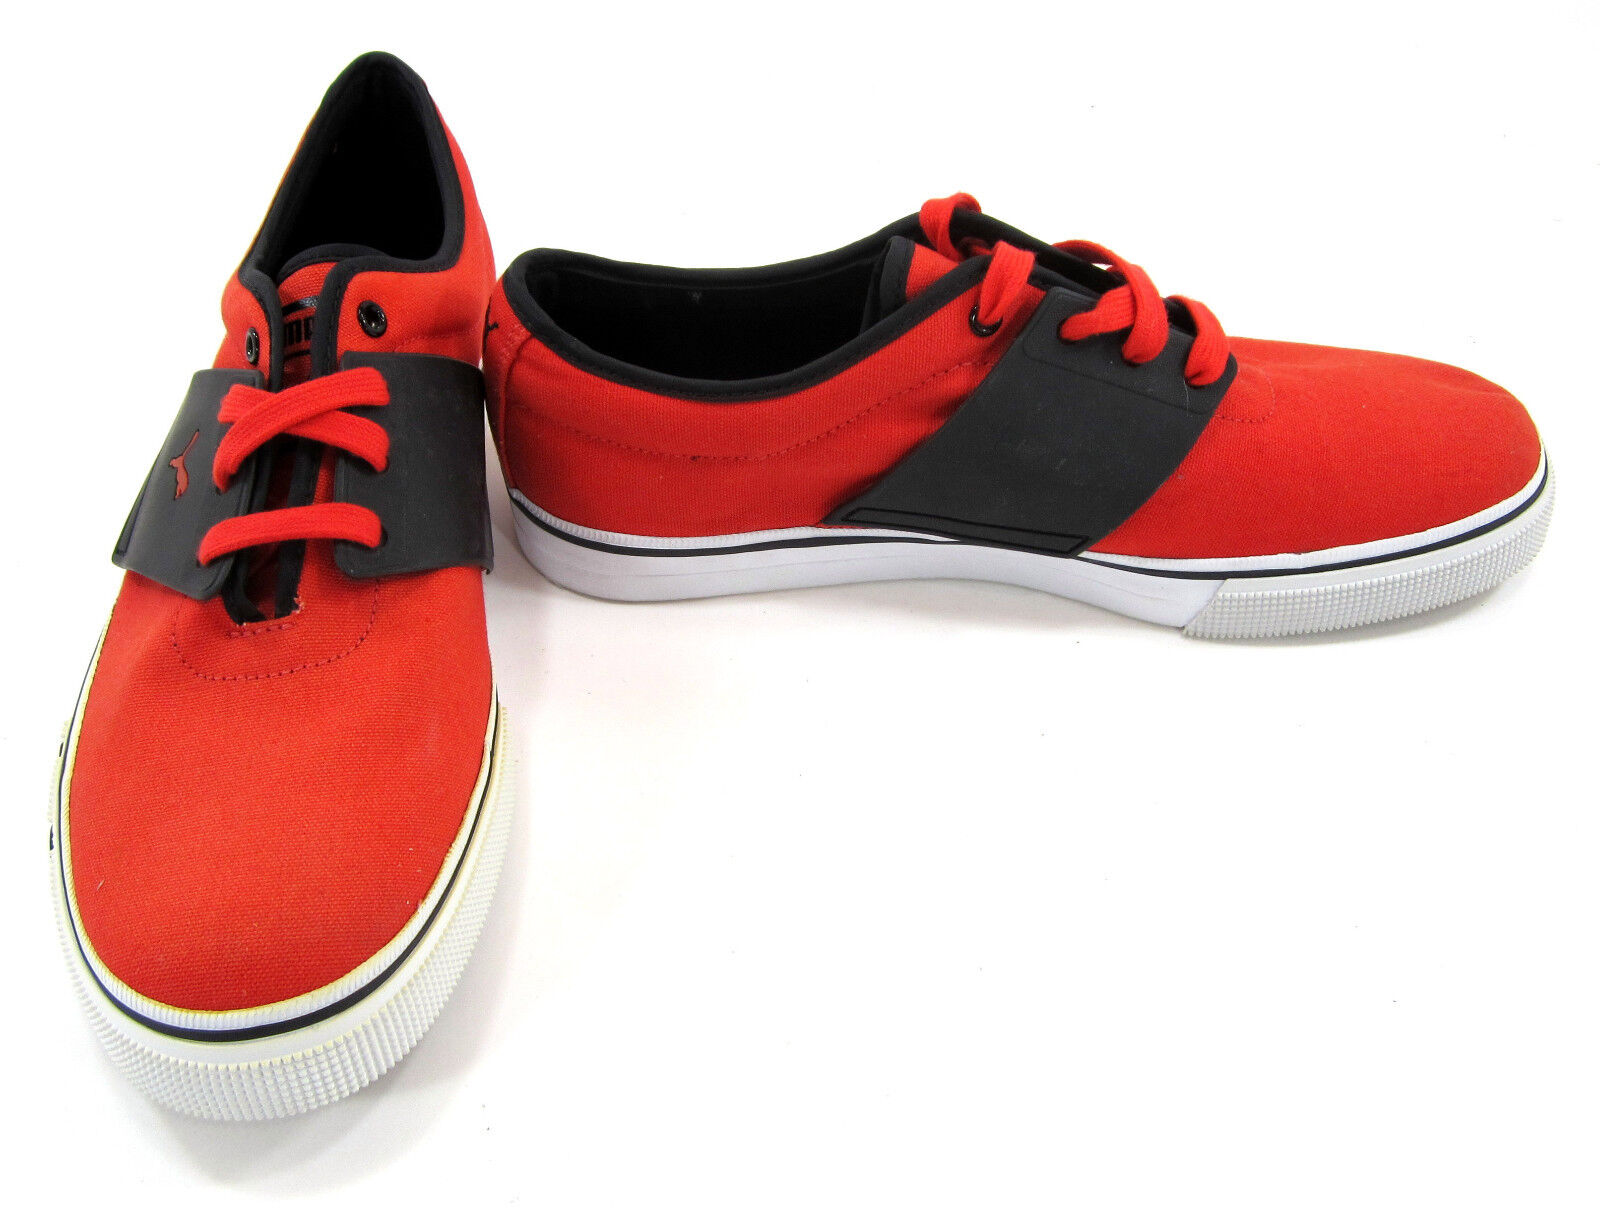 Puma shoes El Ace Canvas Red Red Red Black Sneakers Size 9.5 b8e2e1